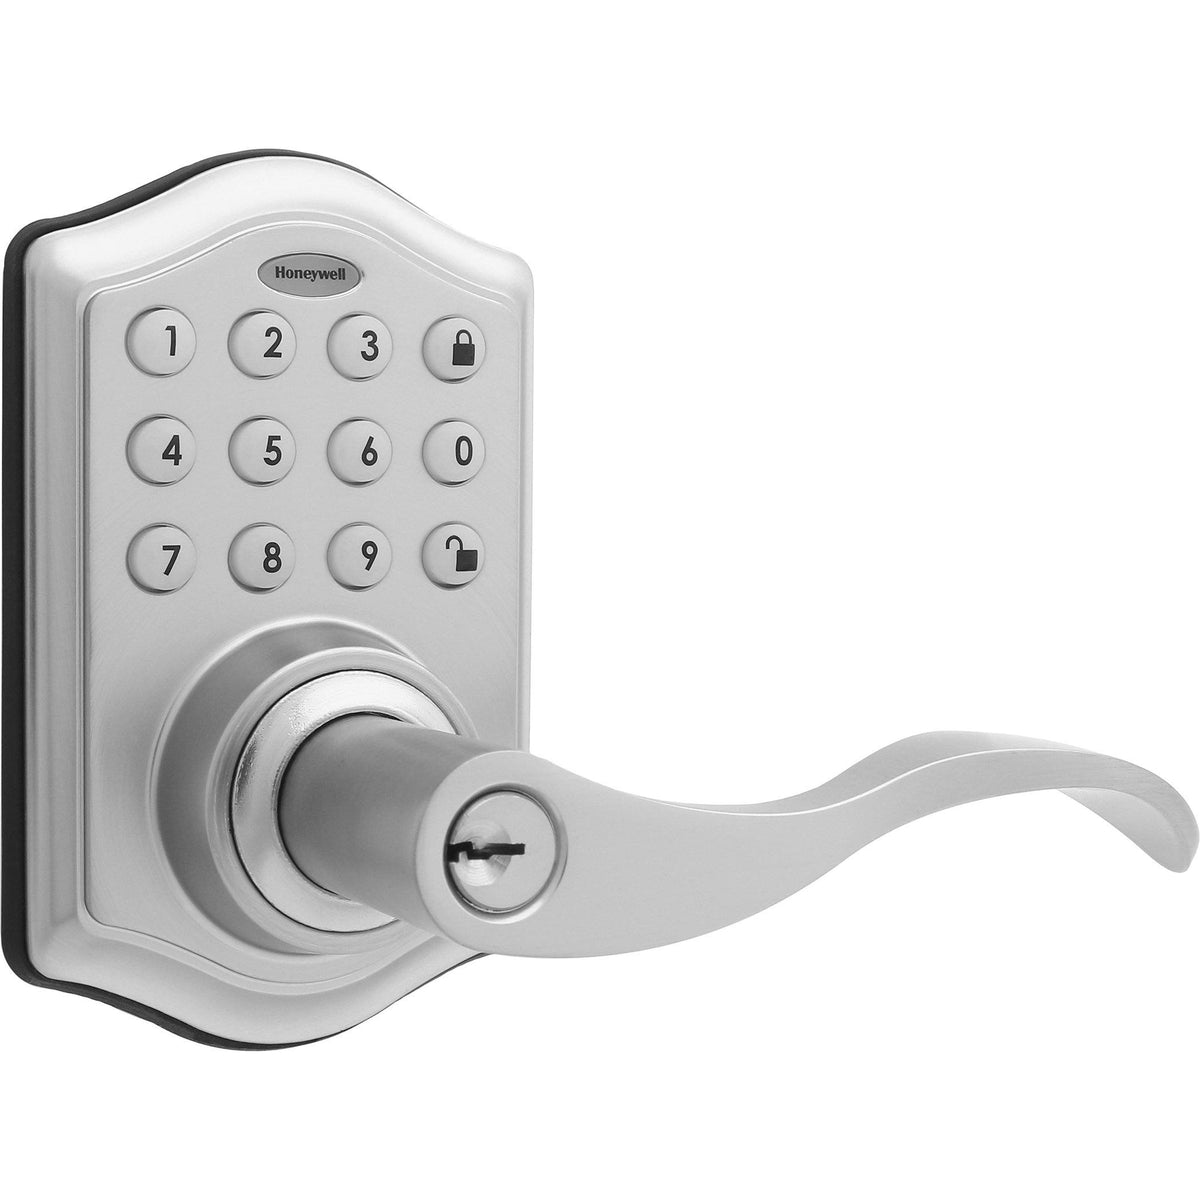 Honeywell 8734301 Electronic Entry Lever Door Lock with Keypad in Satin Nickel